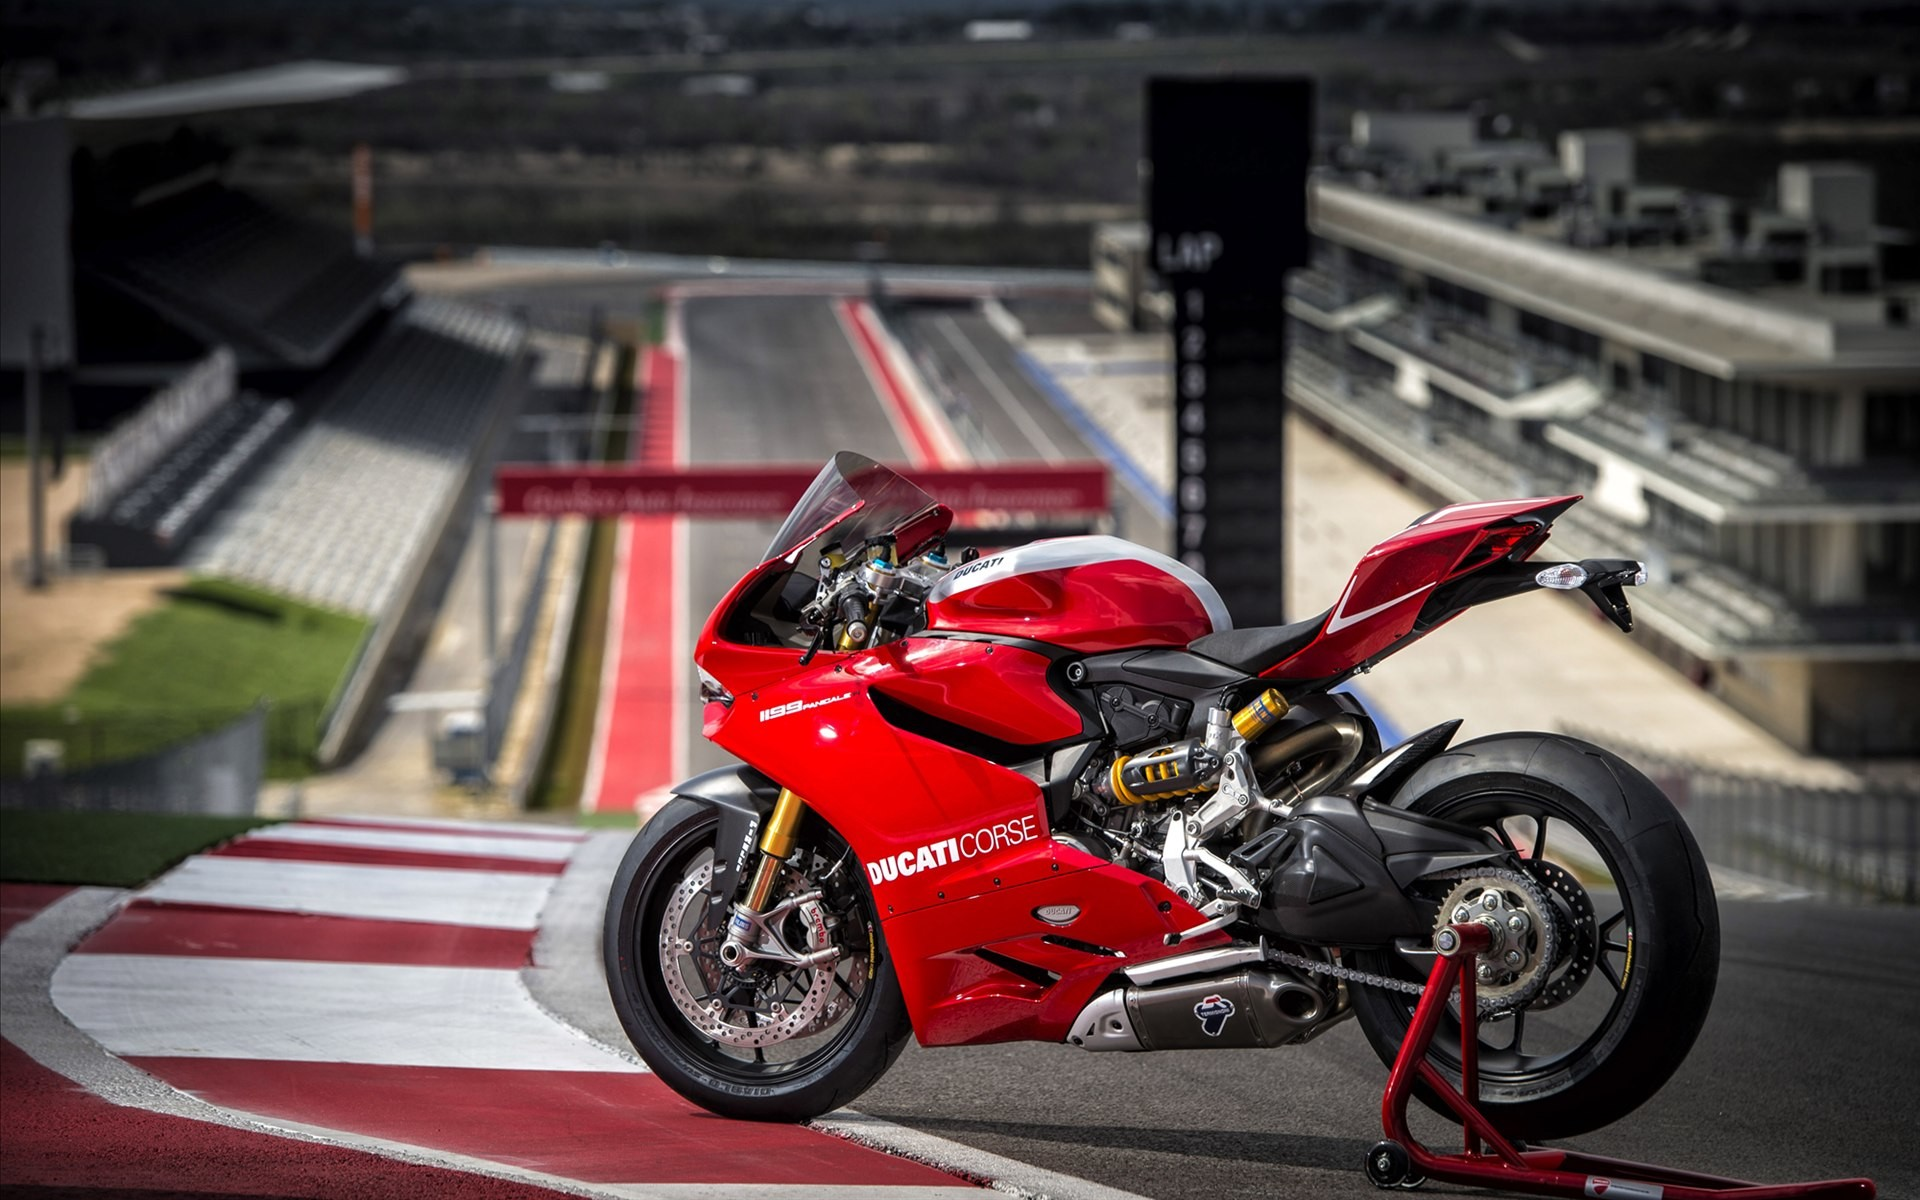 0 15 Outstanding HD Ducati Wallpapers 2013 Ducati Superbike 1199 Panigale R  Wallpapers HD Wallpapers